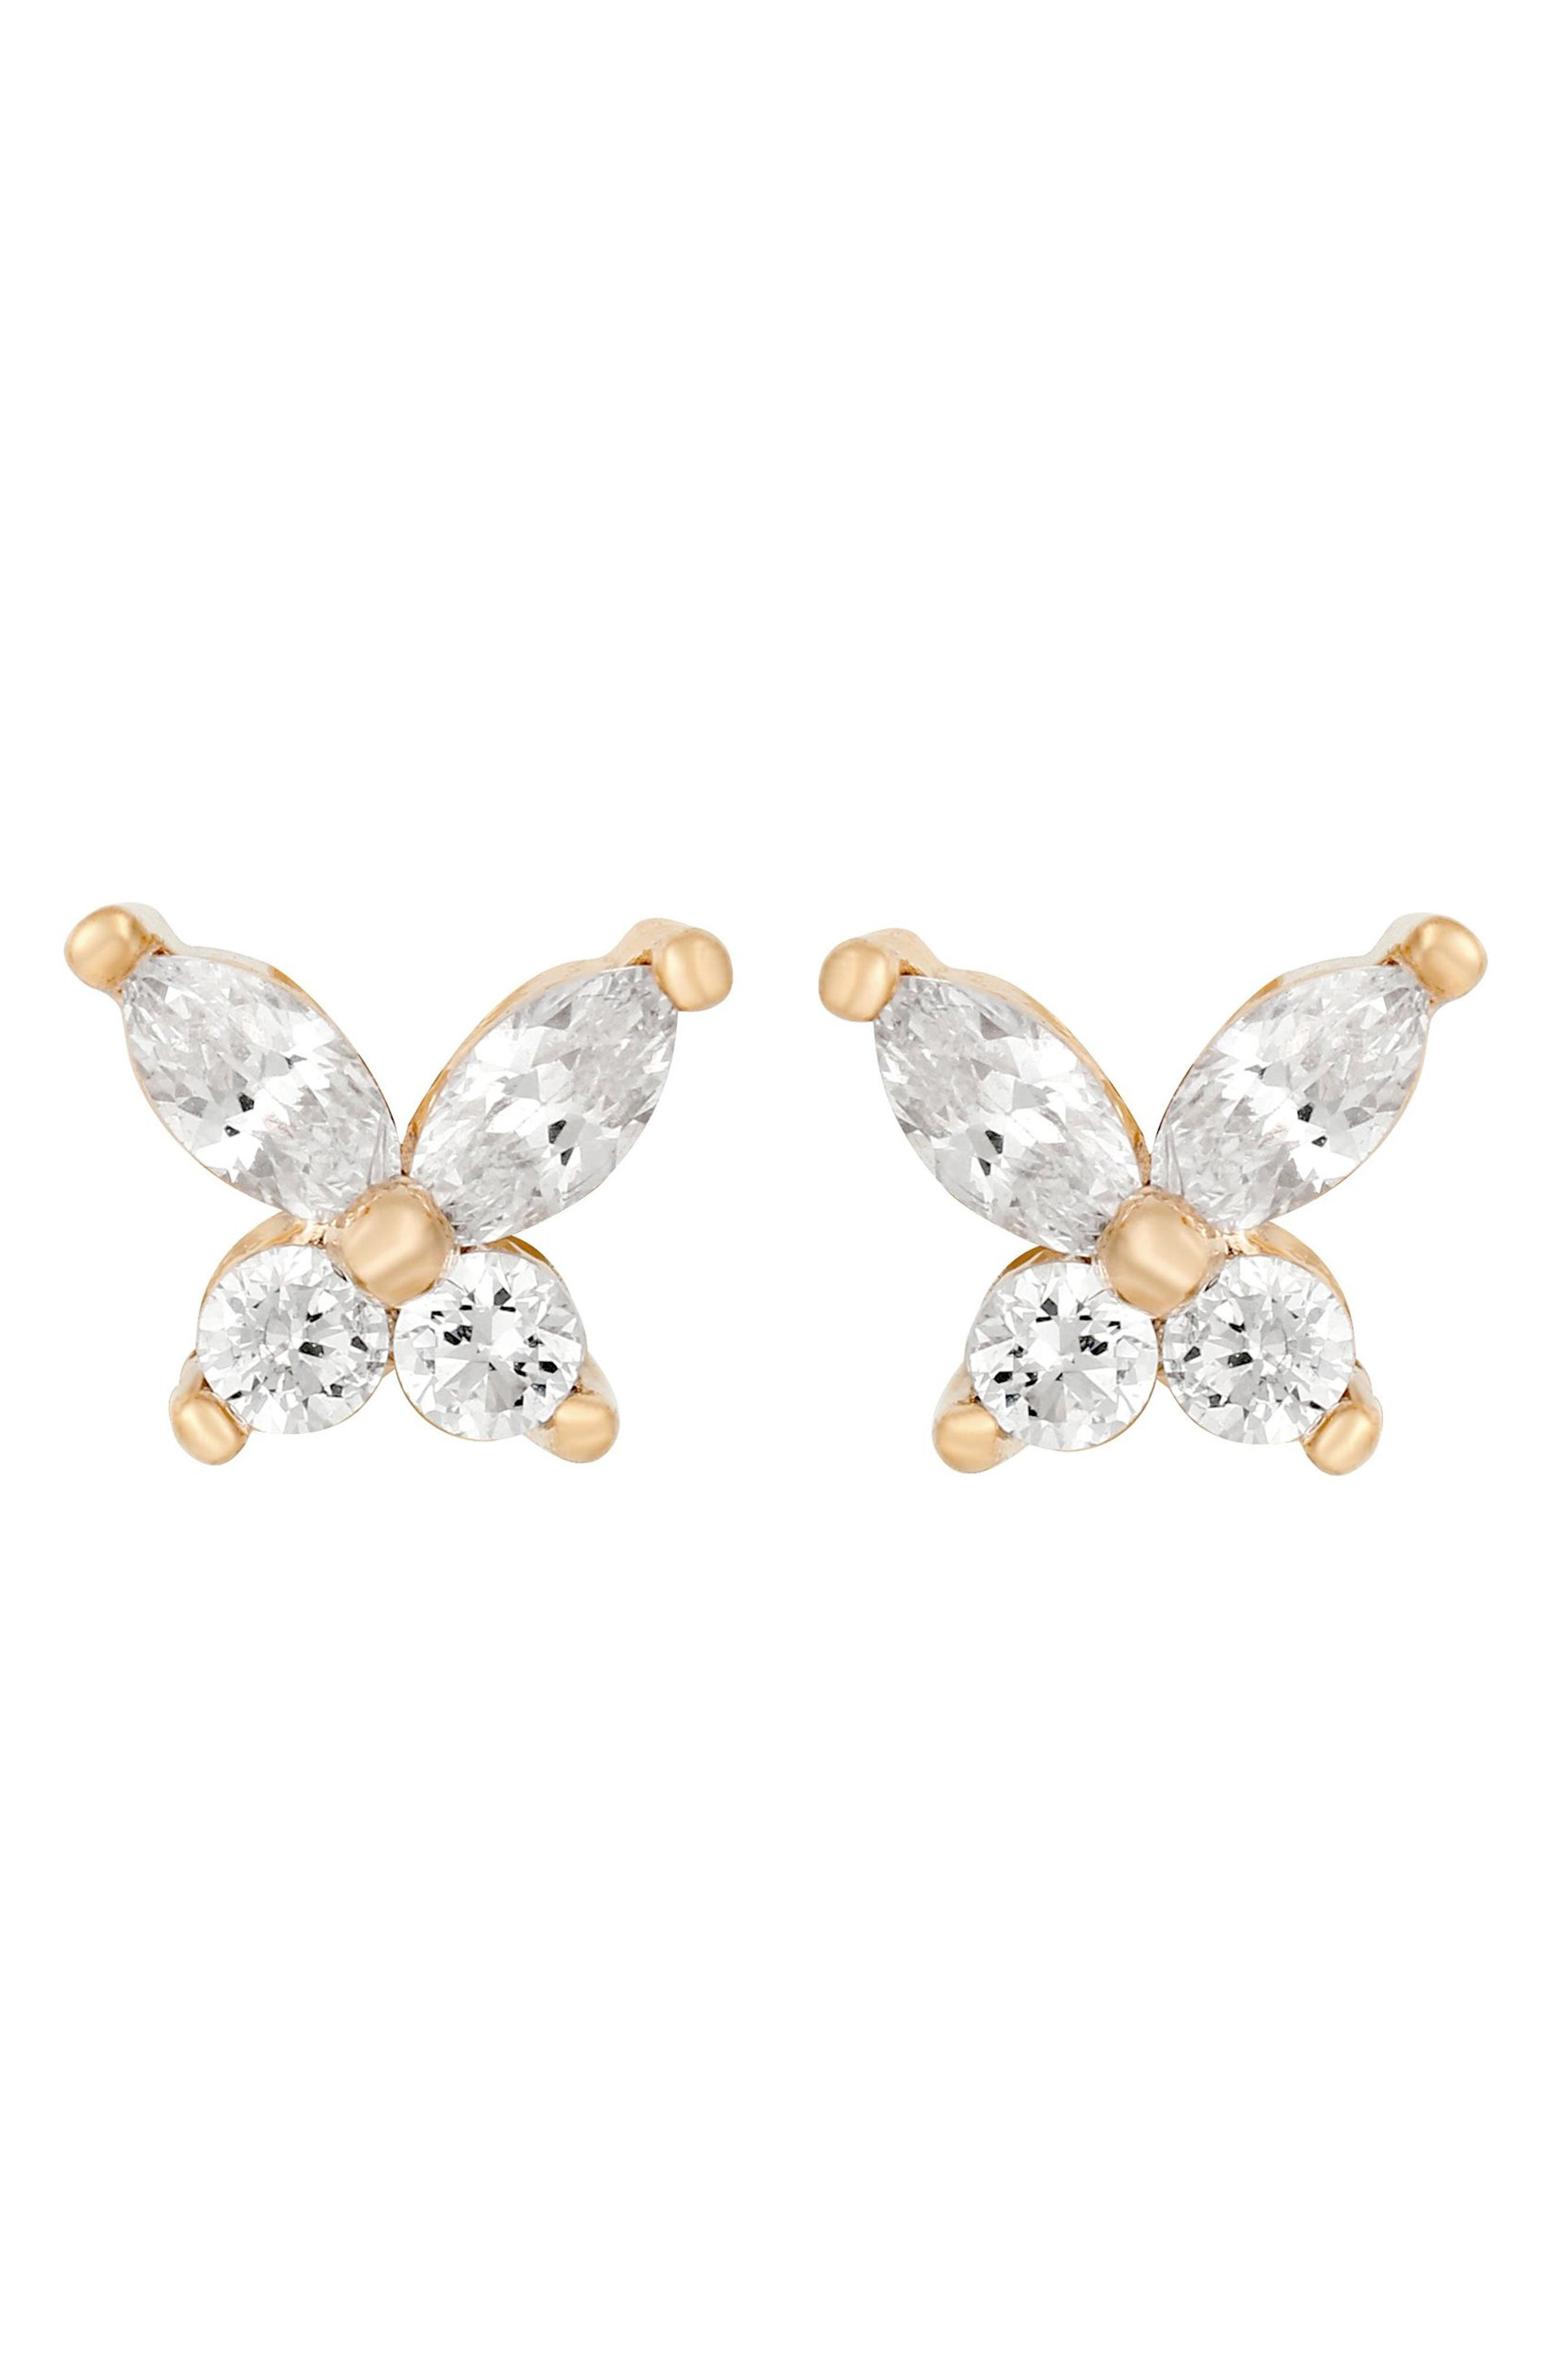 Born To Fly Stud Earrings